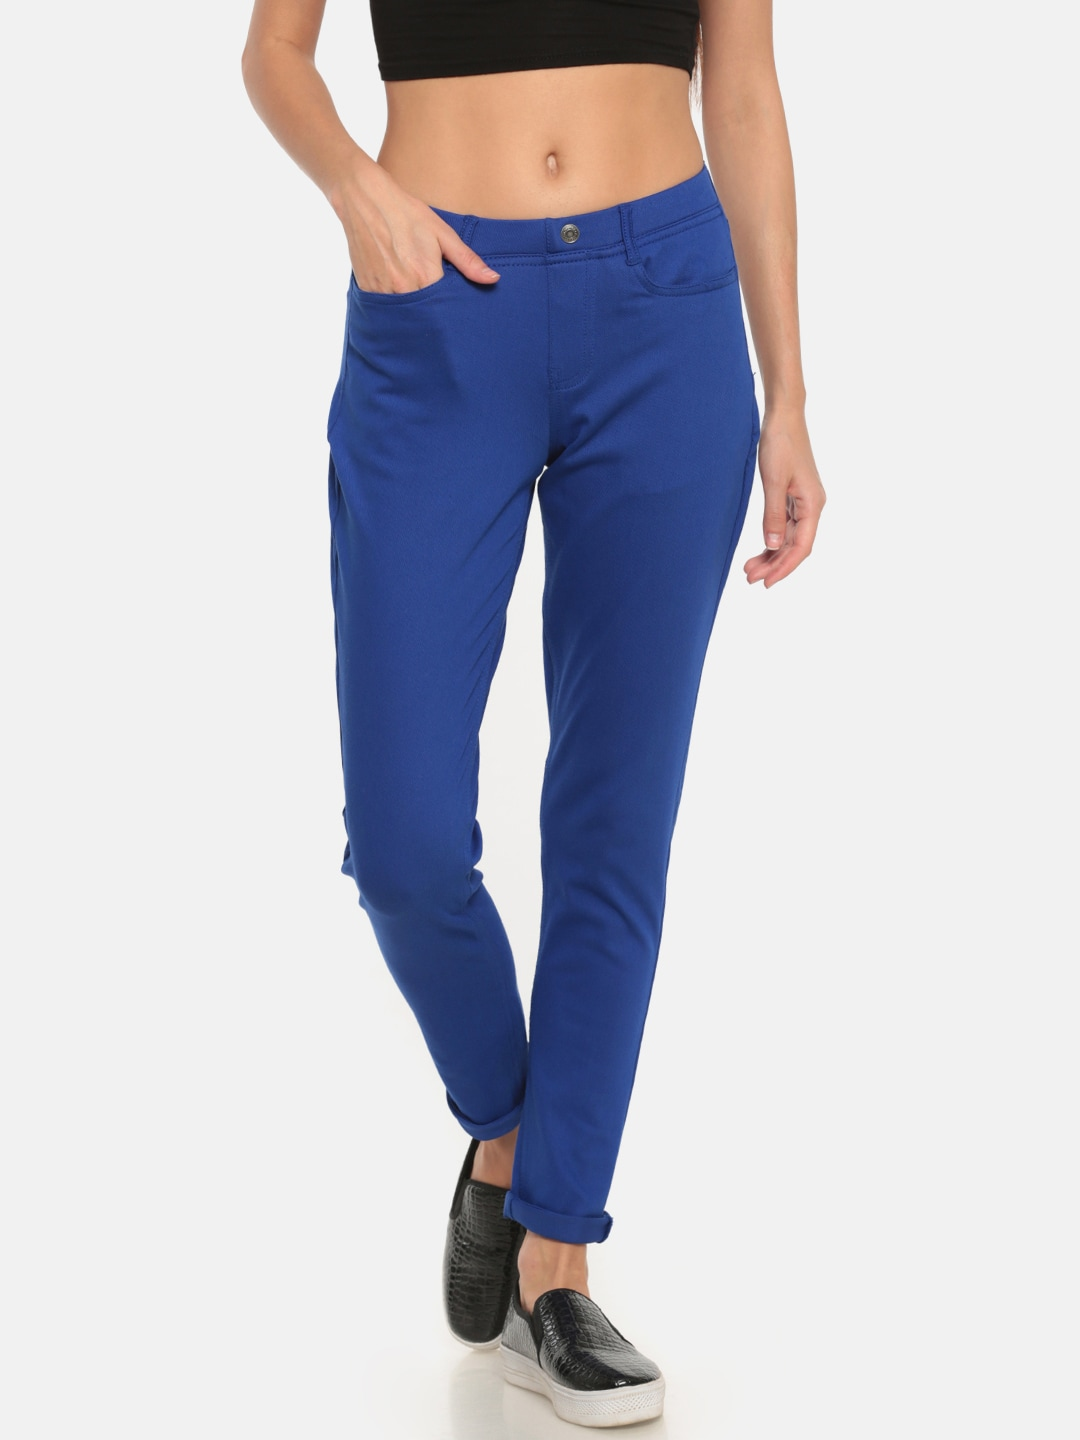 Go Colors Blue Solid Super Stretch Ankle-Length Jeggings image